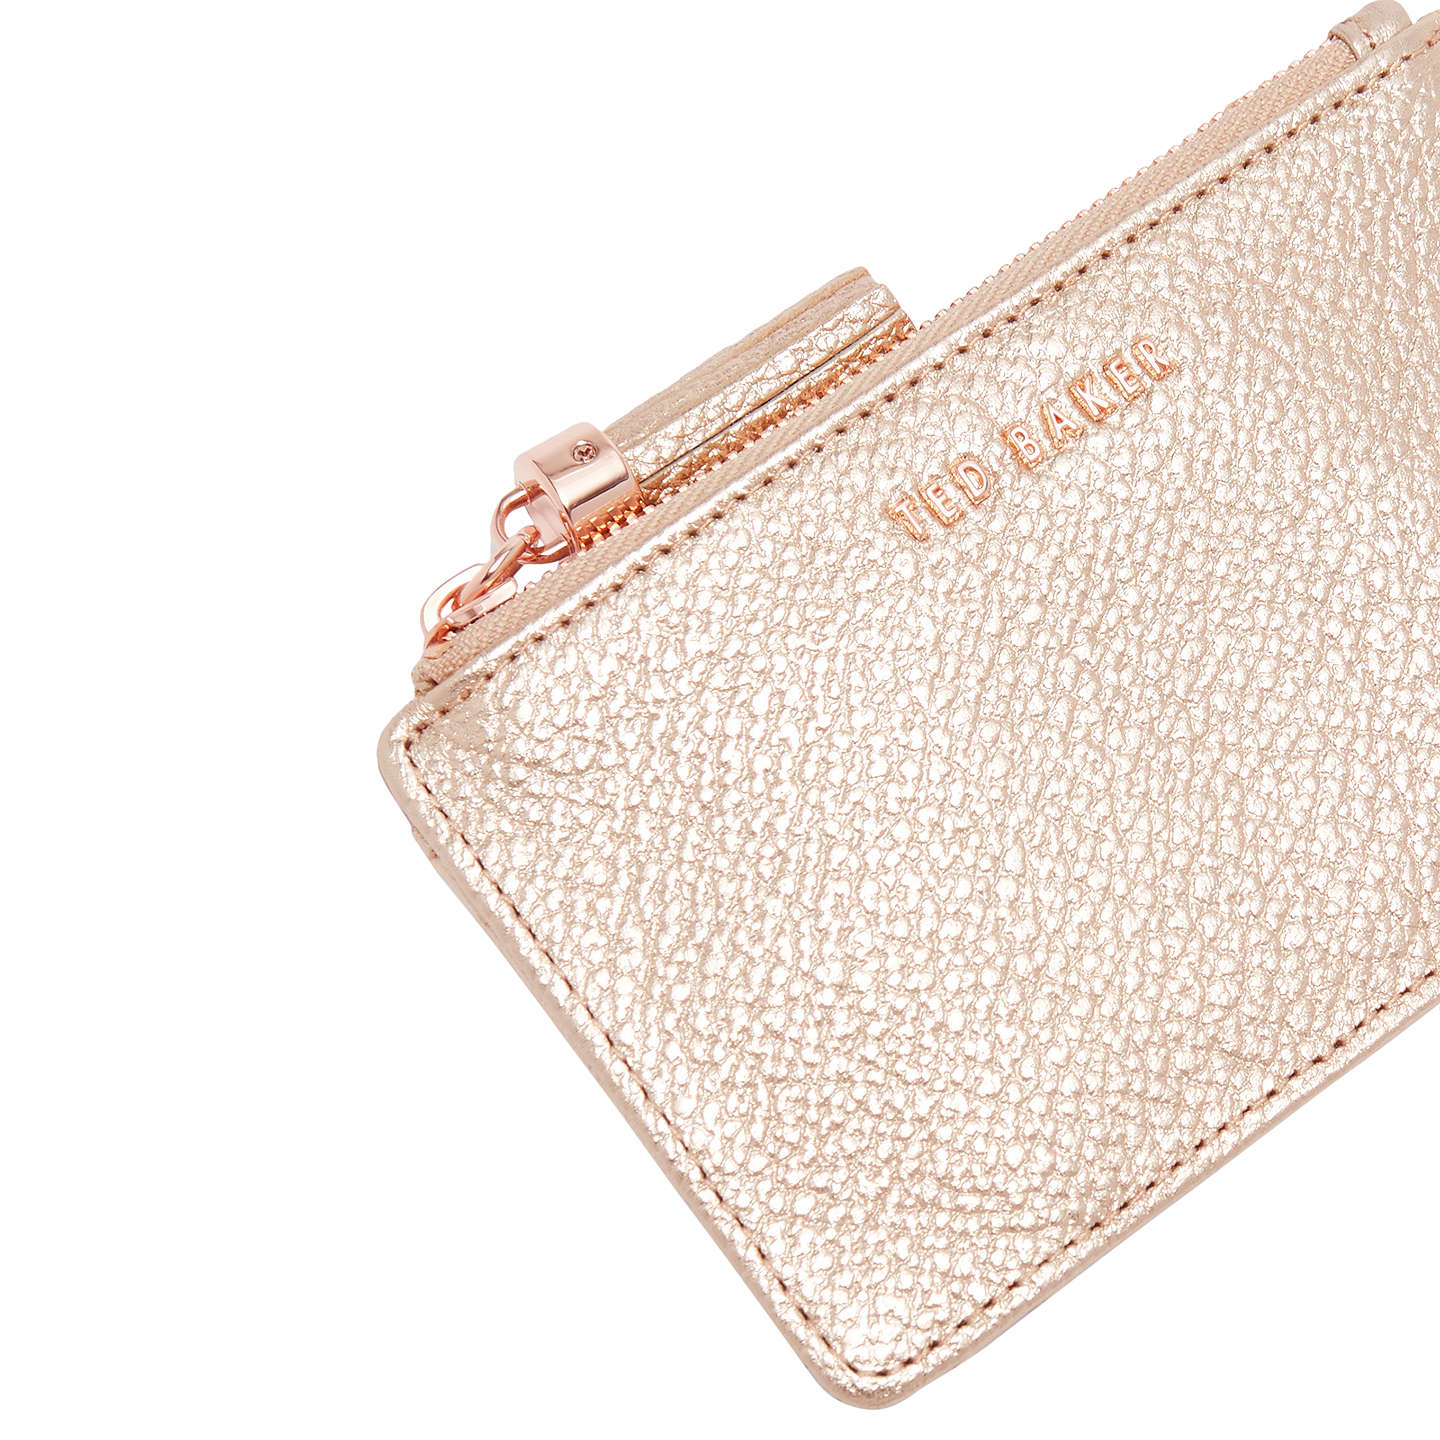 BuyTed Baker Sydnee Leather Zipped Card Holder, Rosegold Online at johnlewis.com